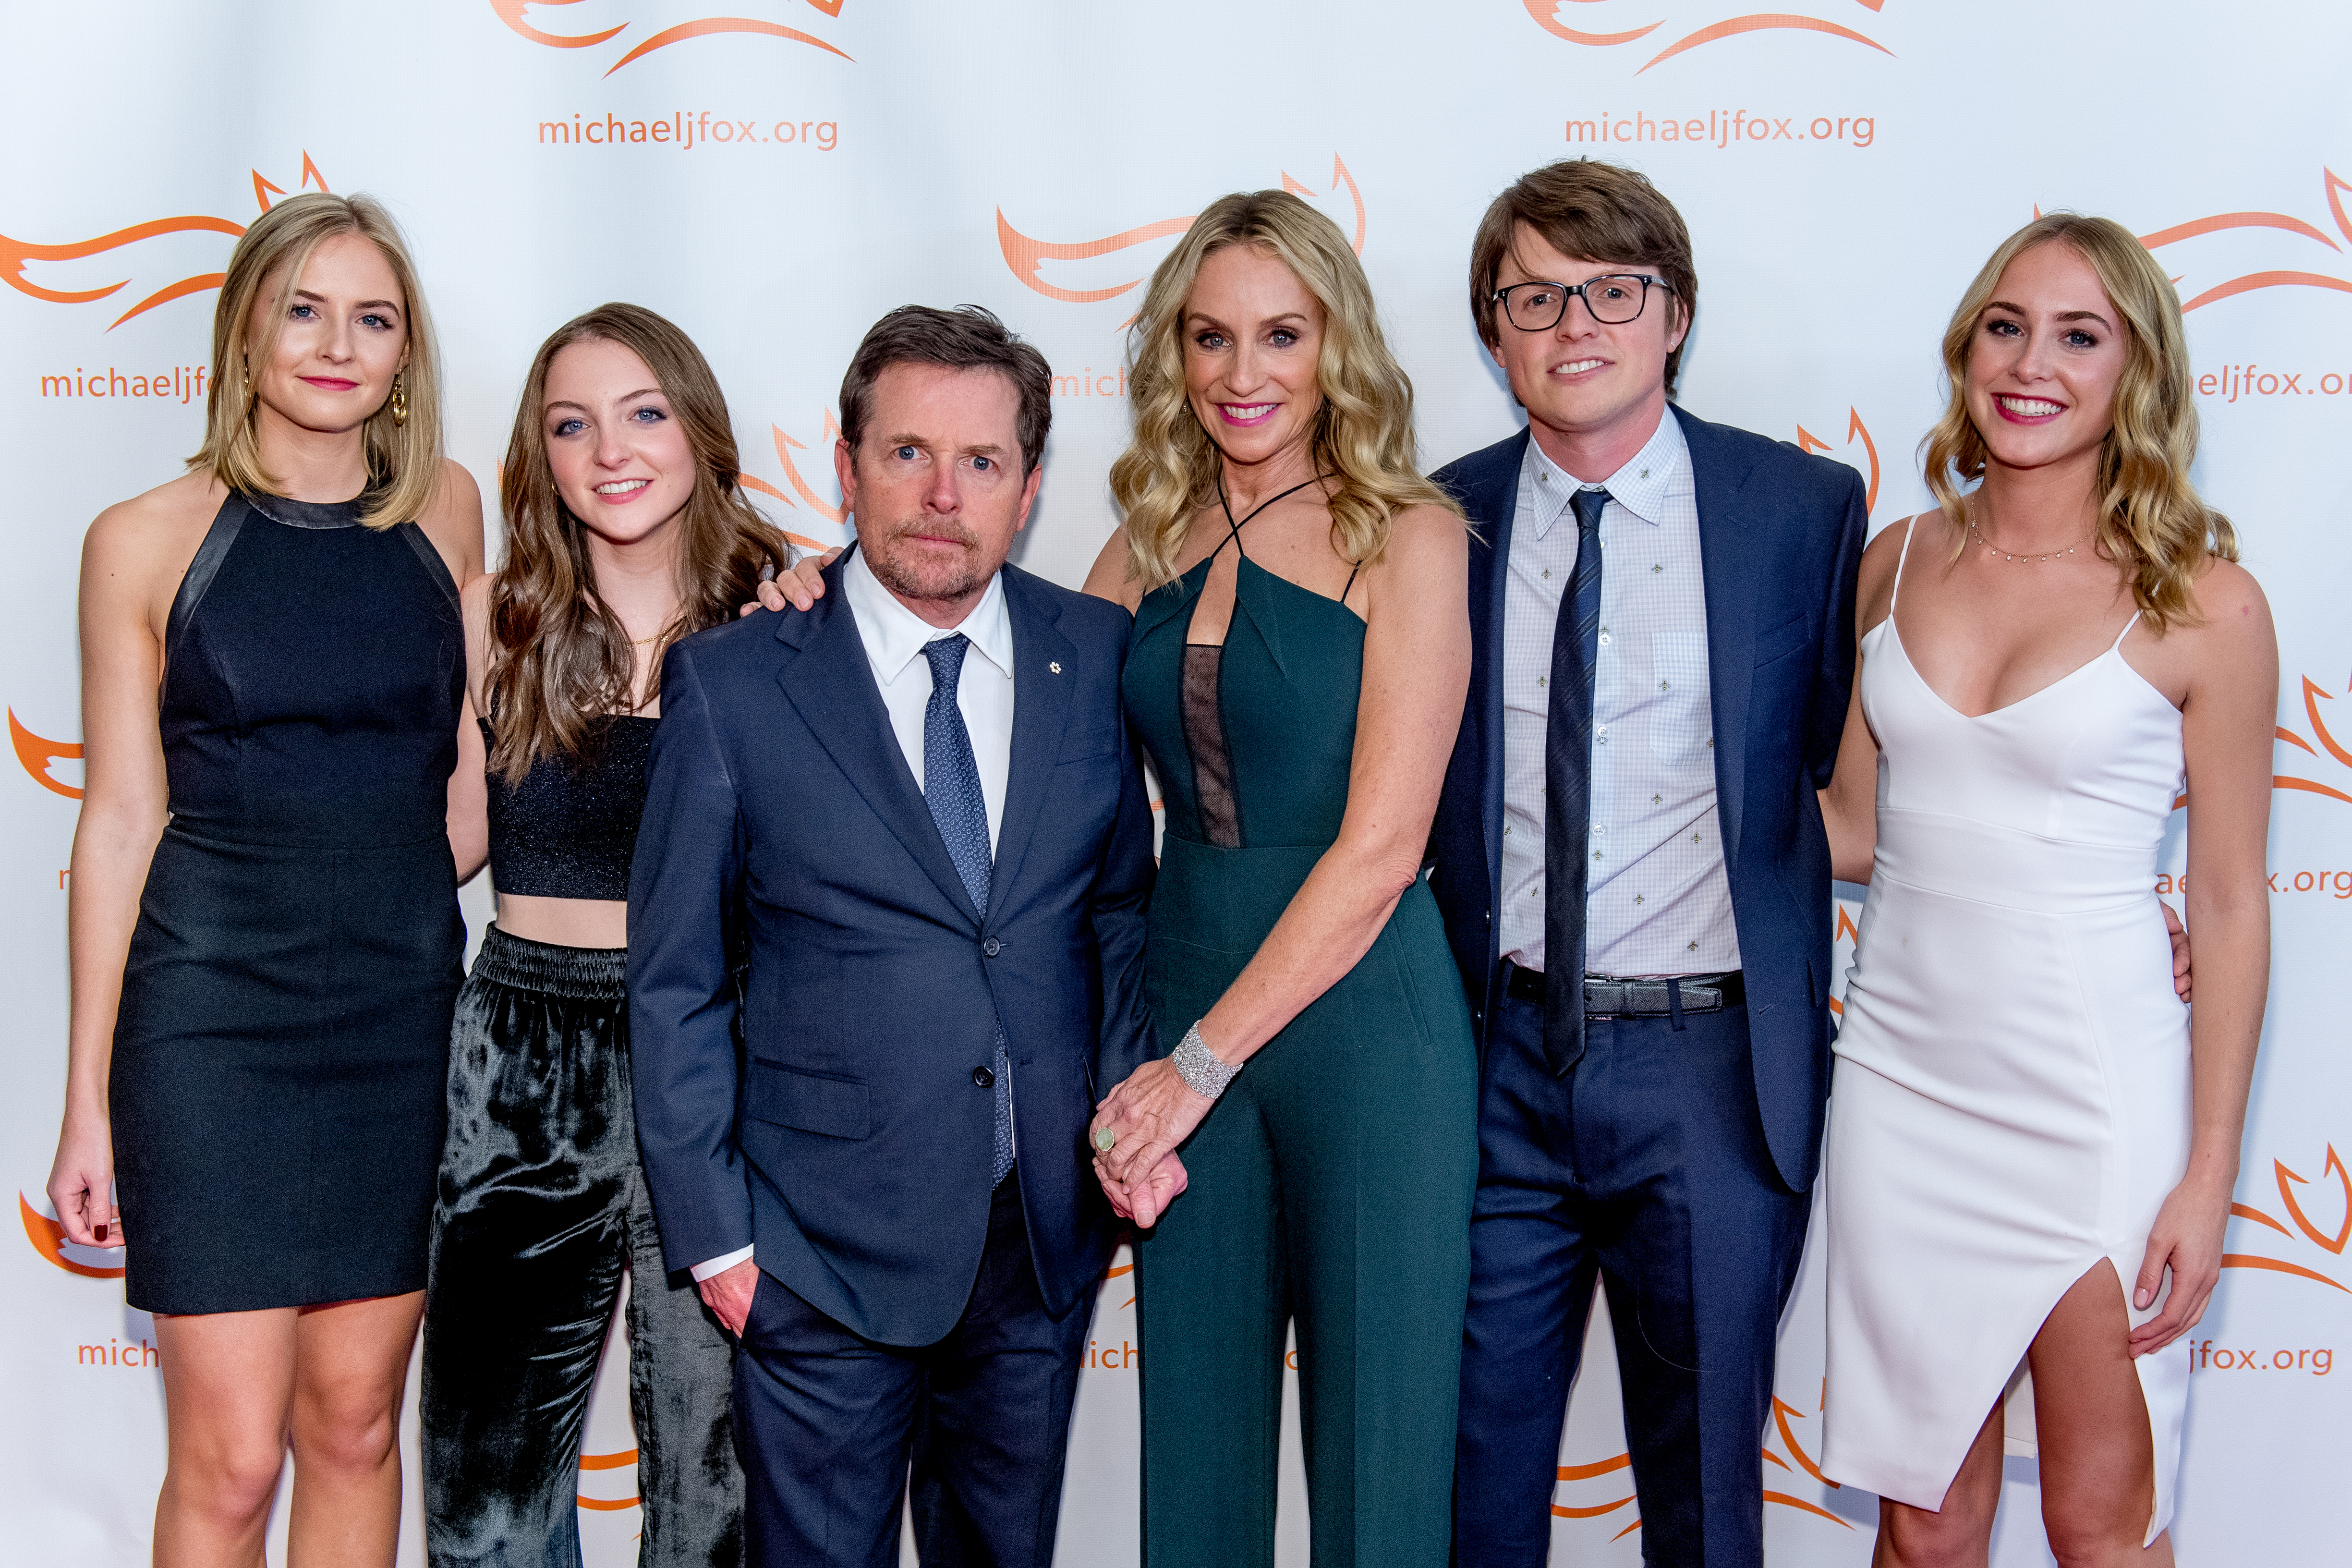 Michael J. Fox with his family